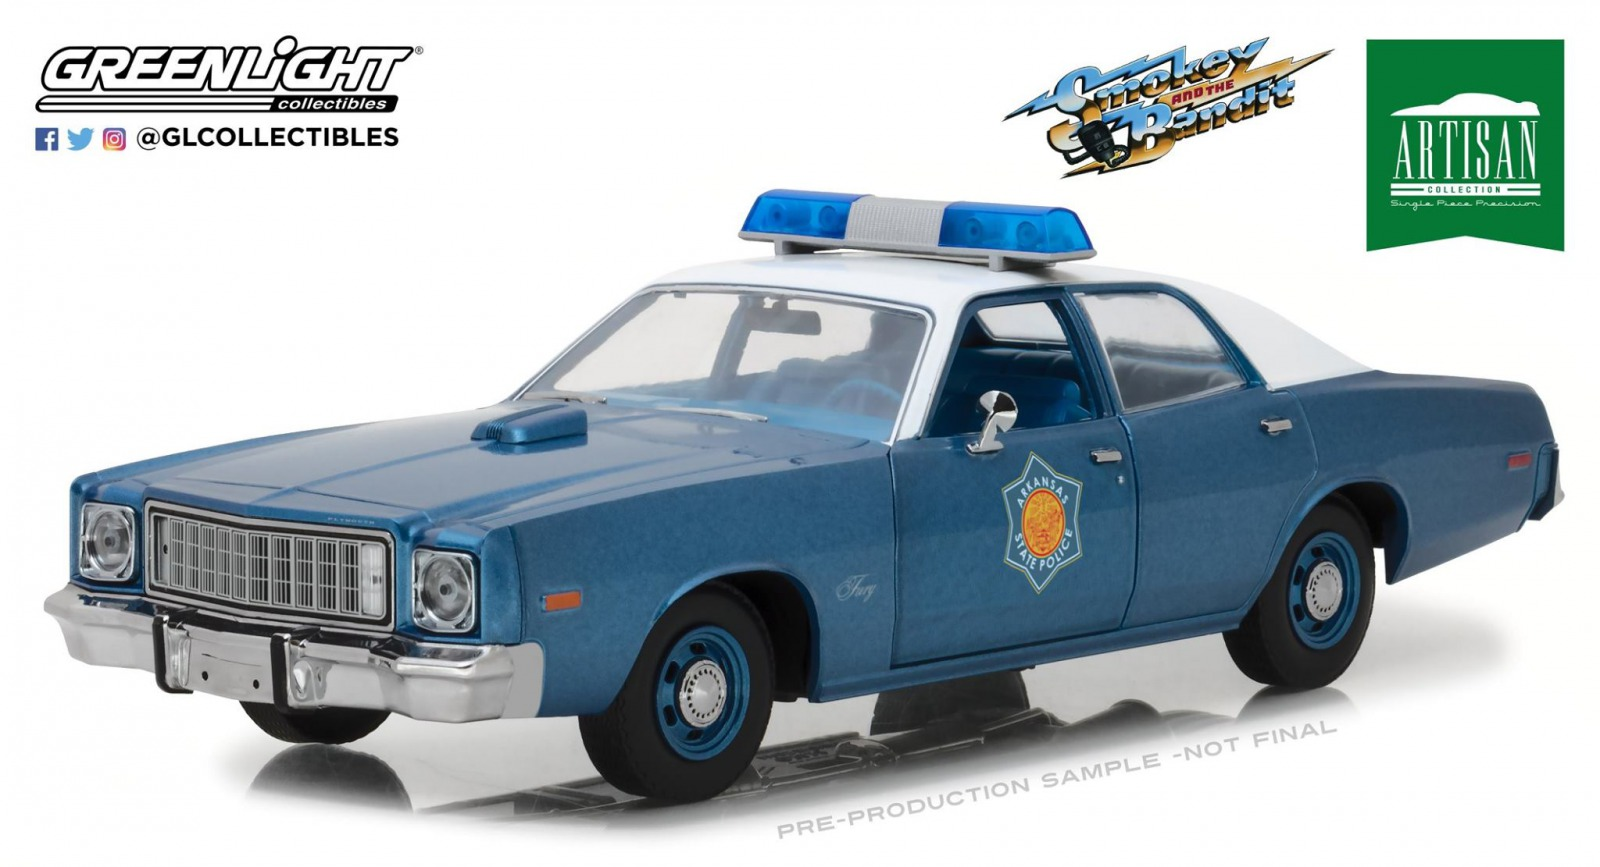 Greenlight グリーンライト 1:18 1975年モデル プリムス フューリー アーカンサス警察 「トランザム7000」1975 Plymouth Fury Arkansas State Police Smokey and the Bandit (1977) 1/18 by Greenlight NEW